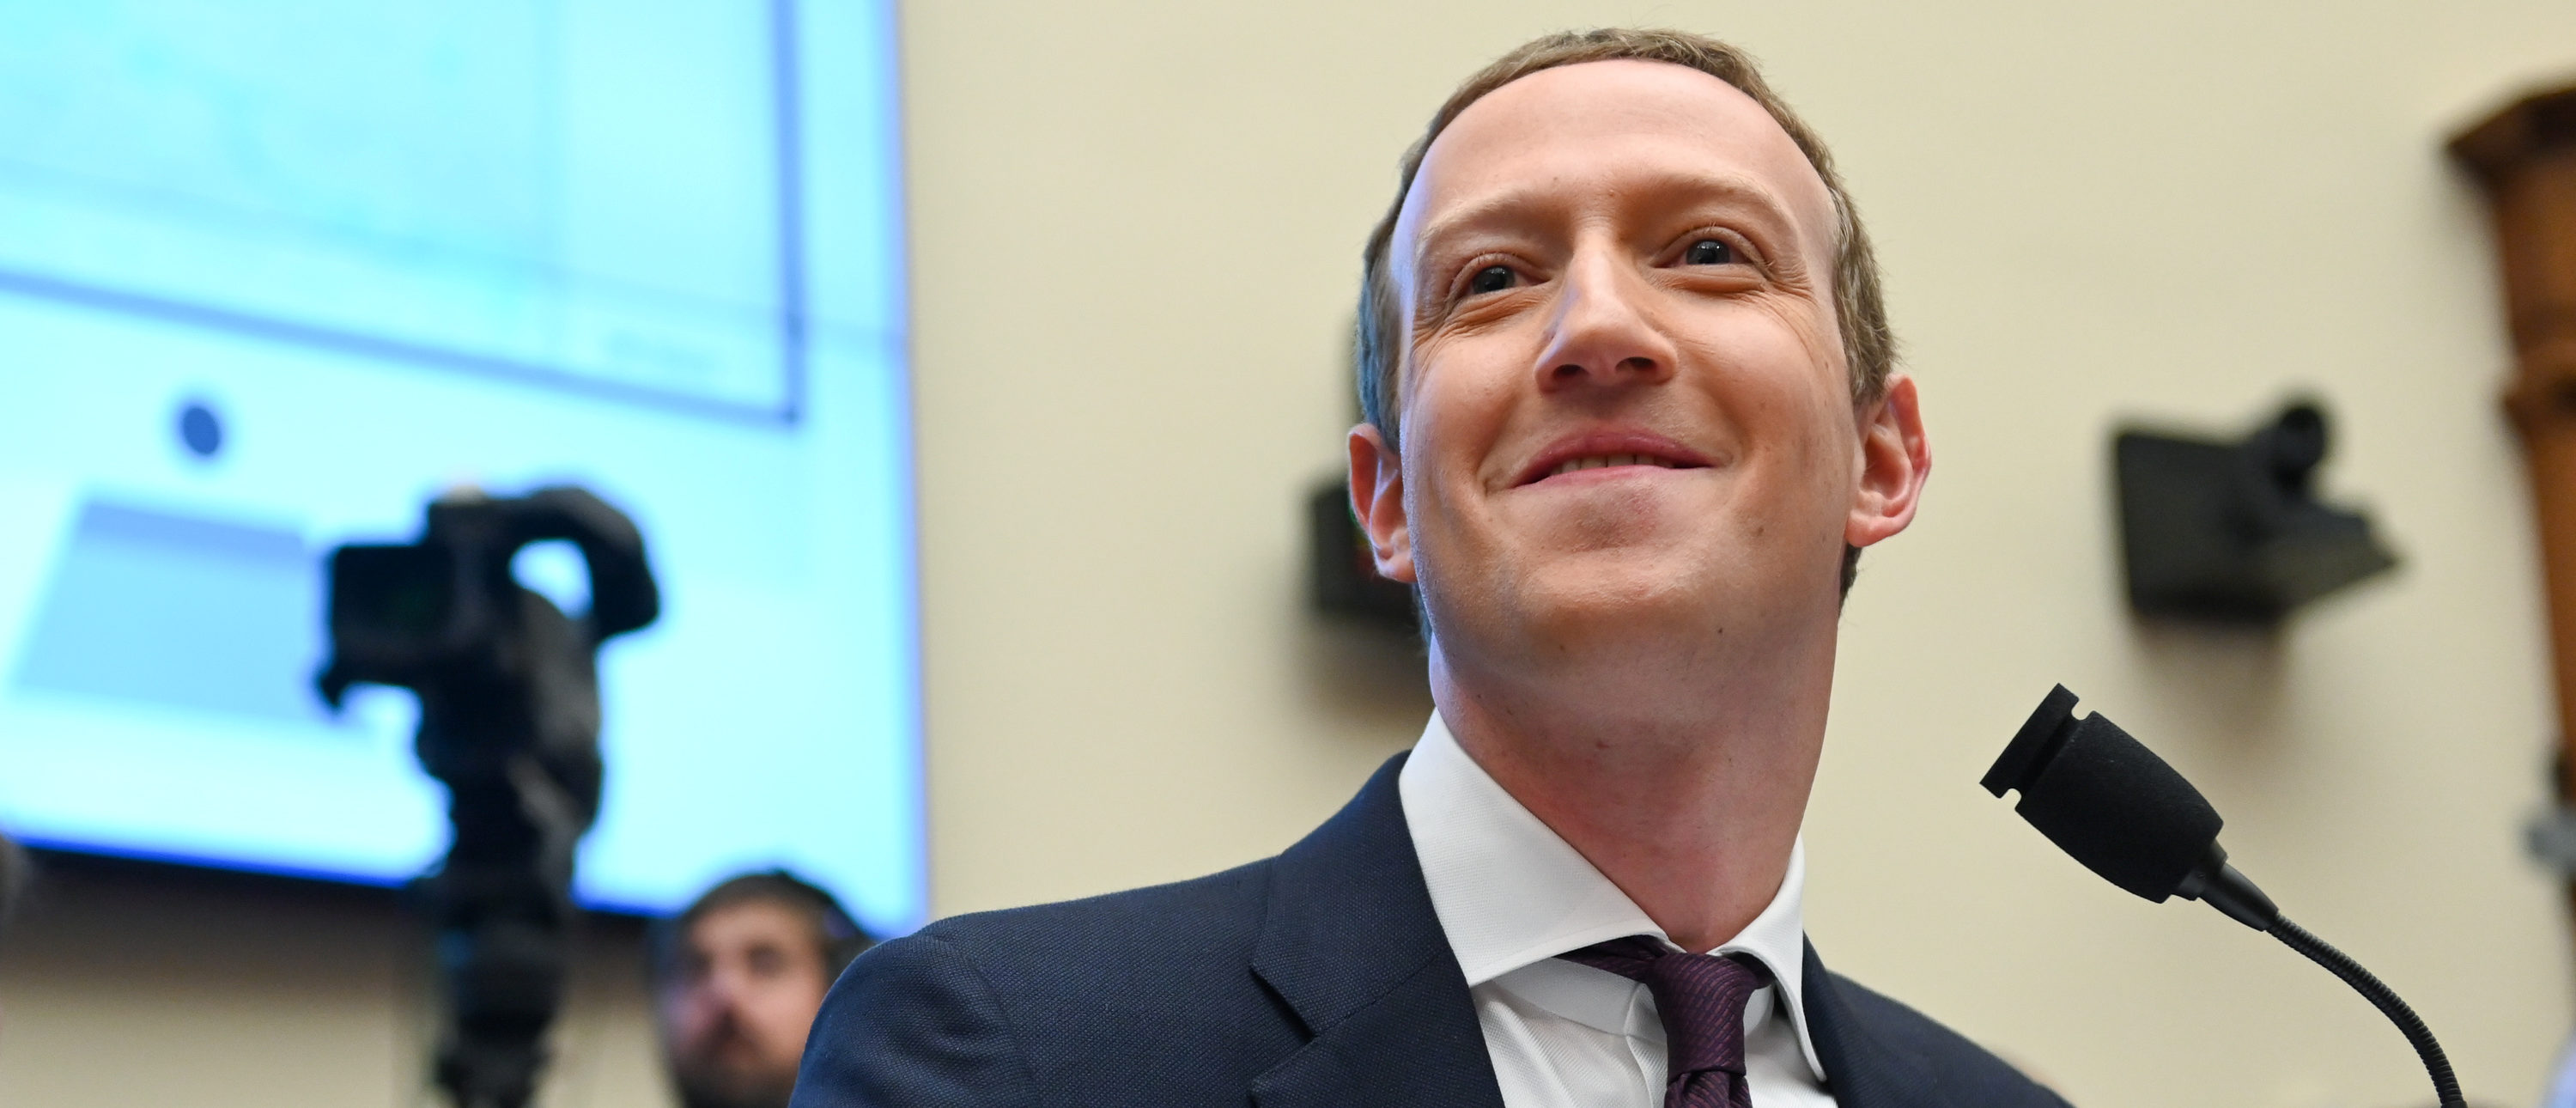 Facebook Chairman and CEO Mark Zuckerberg testifies at a House Financial Services Committee hearing in Washington, U.S., Oct. 23, 2019. REUTERS/Erin Scott